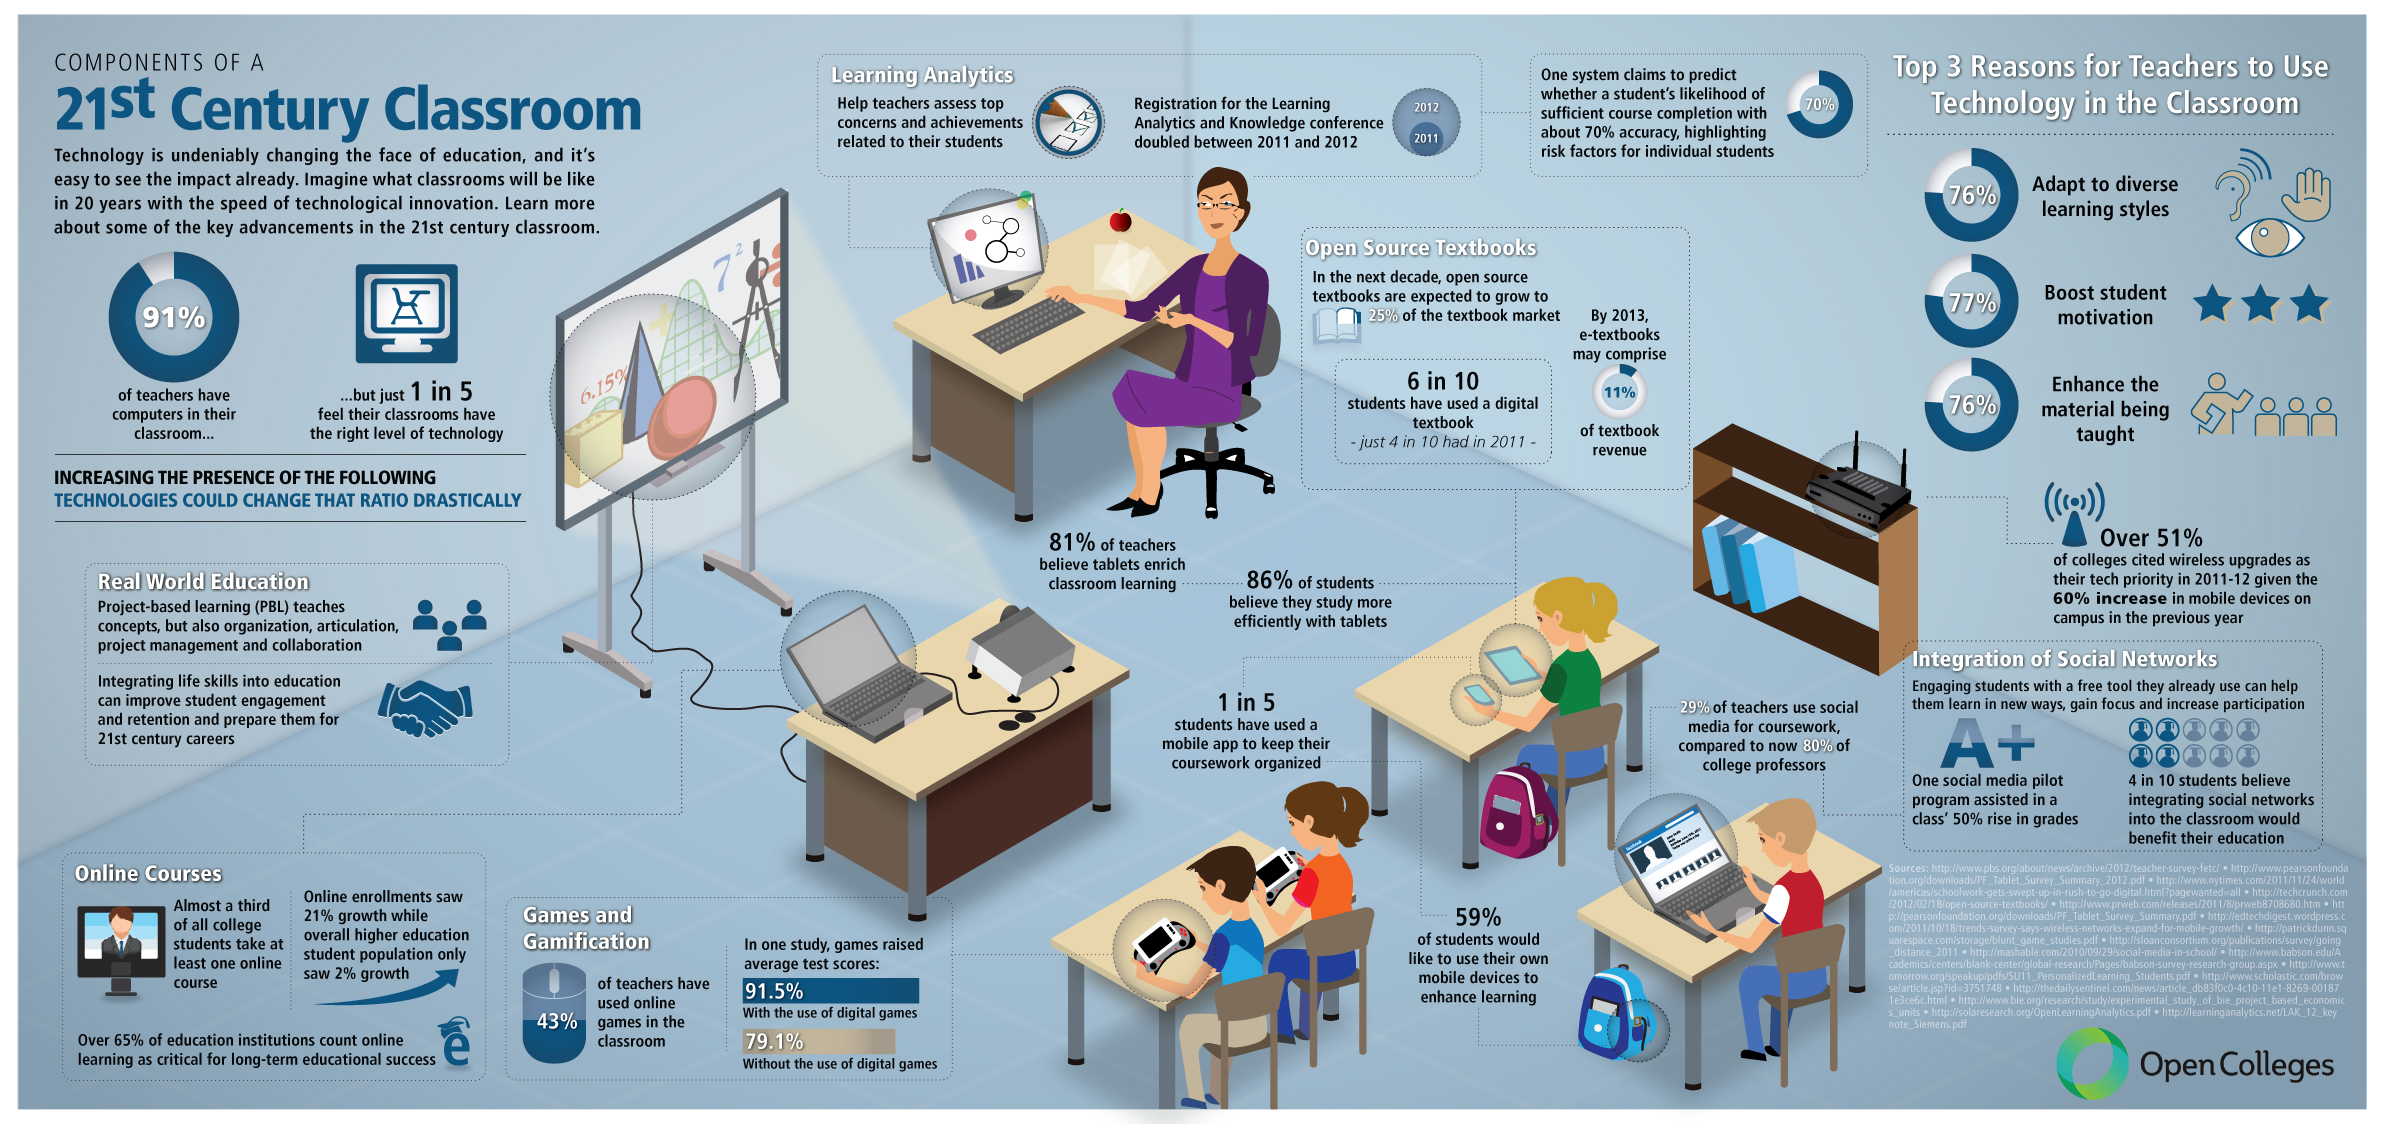 the evolution of computer technology and the use of computers in school classrooms